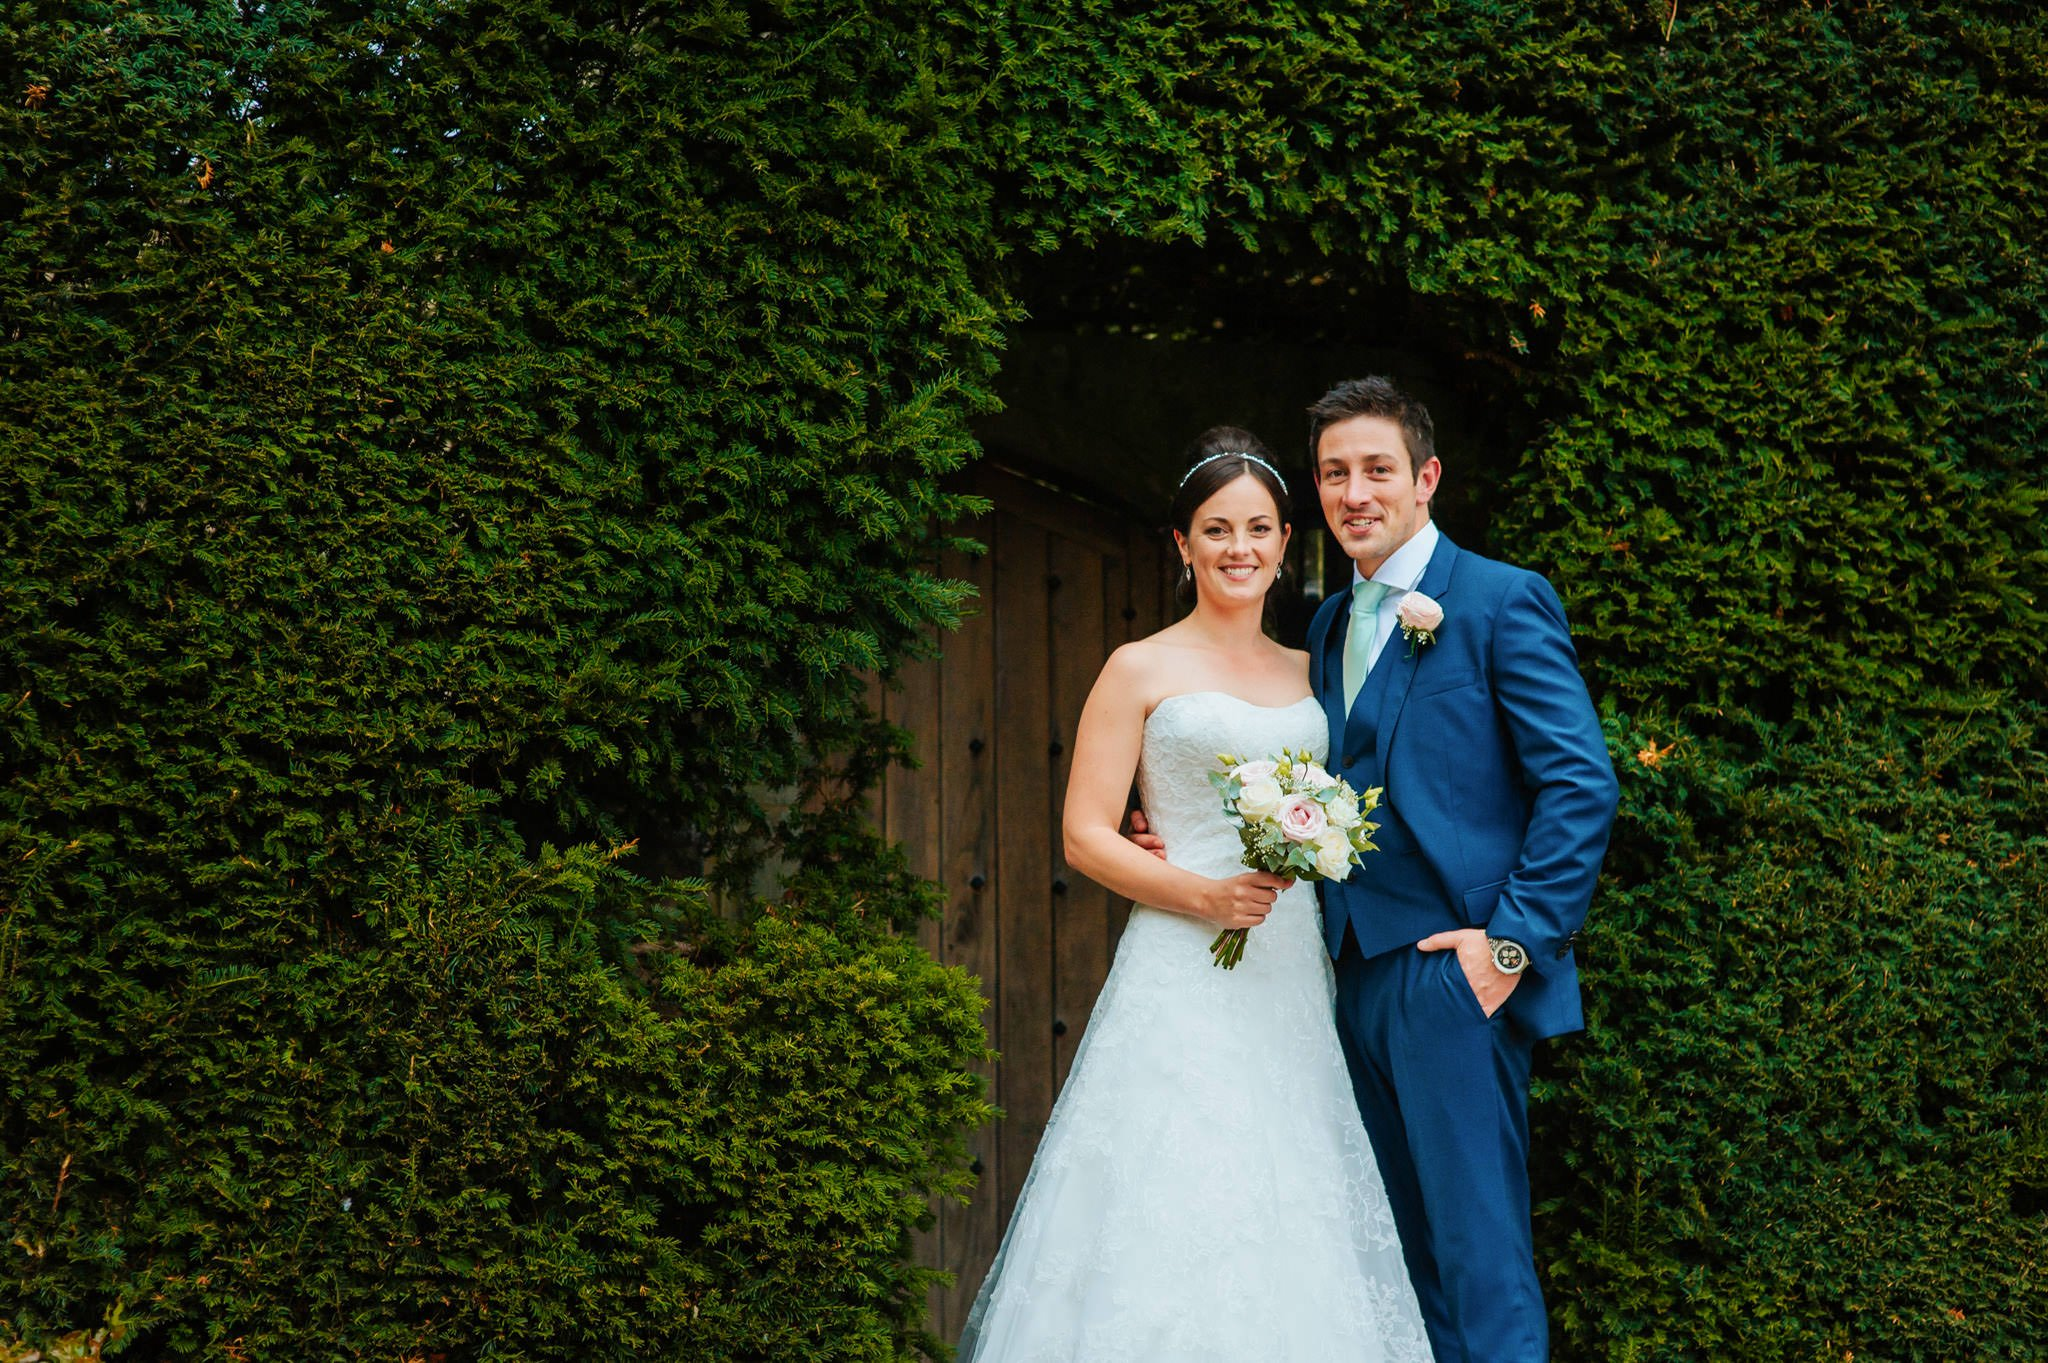 eastnor castle wedding pictures 65 - Eastnor Castle wedding photographer Herefordshire, West Midlands - Sarah + Dean